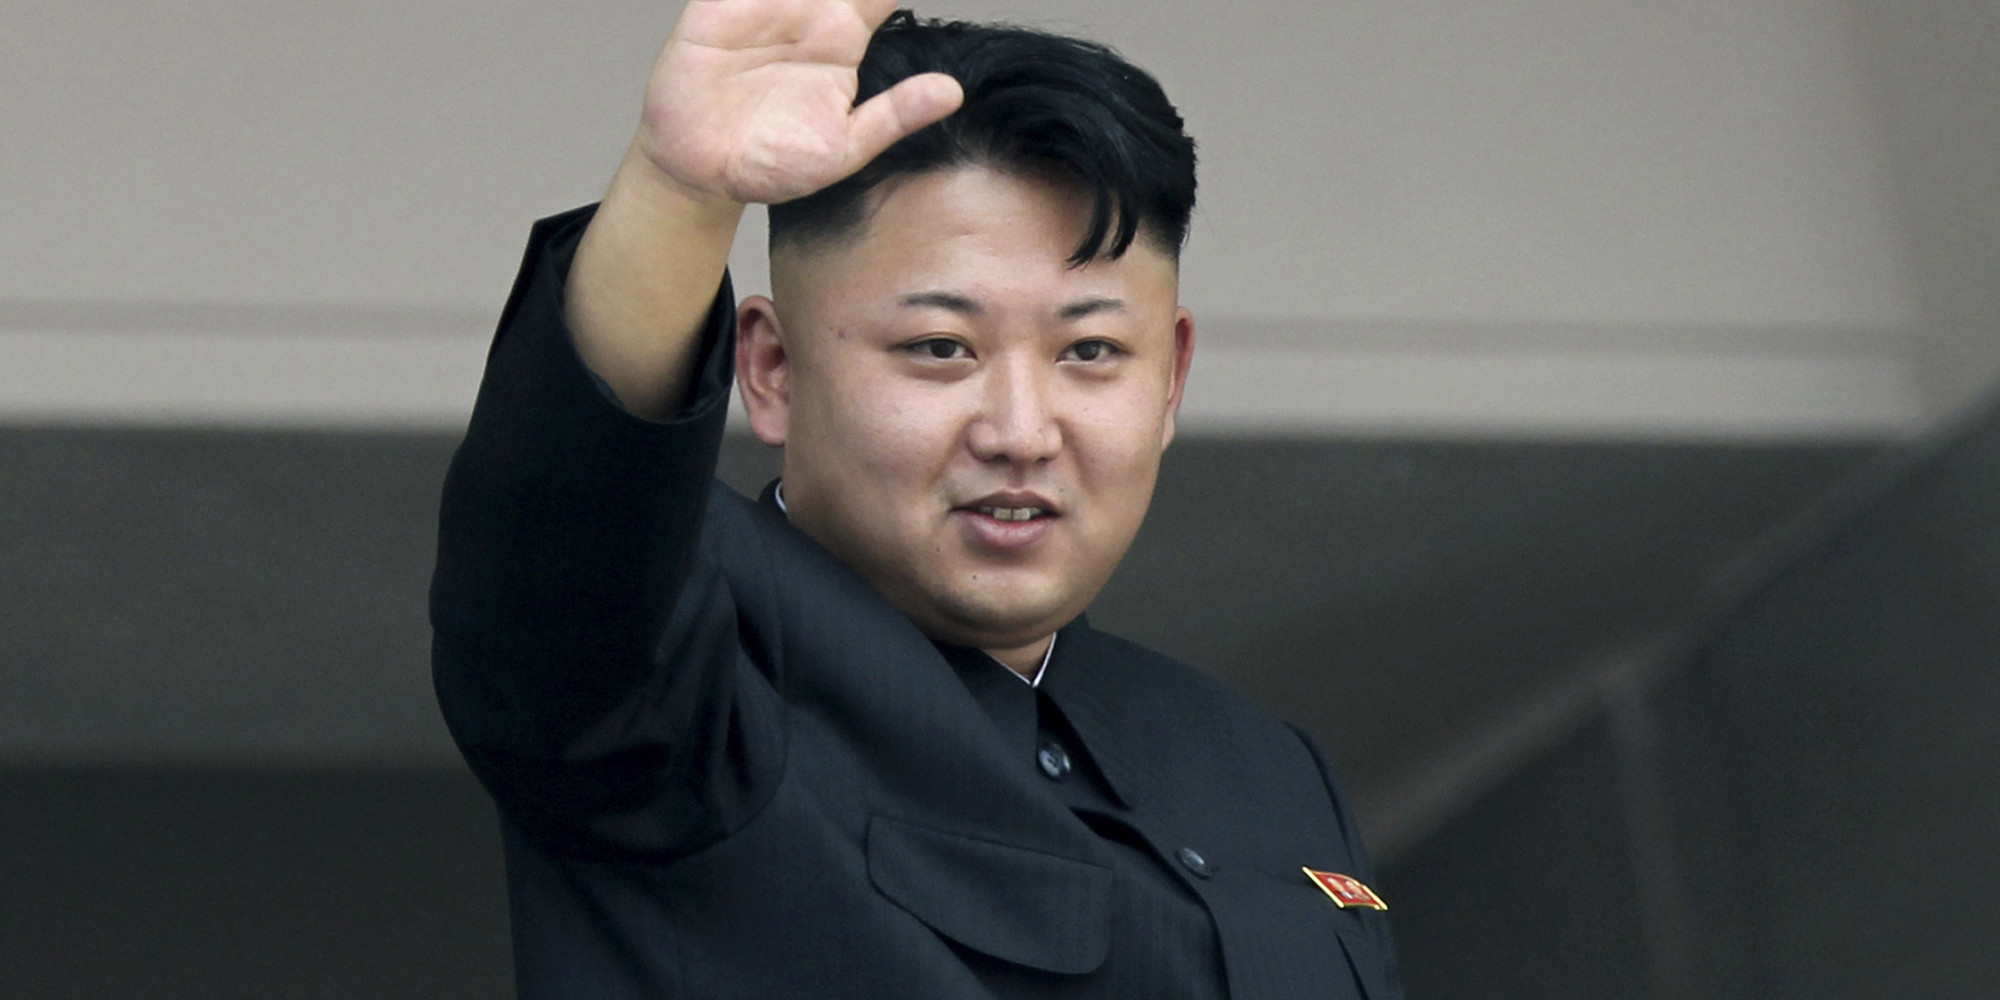 Kim Jong-Un Banning Sarcasm Is The Wisest, Most Intelligent Decision Ever